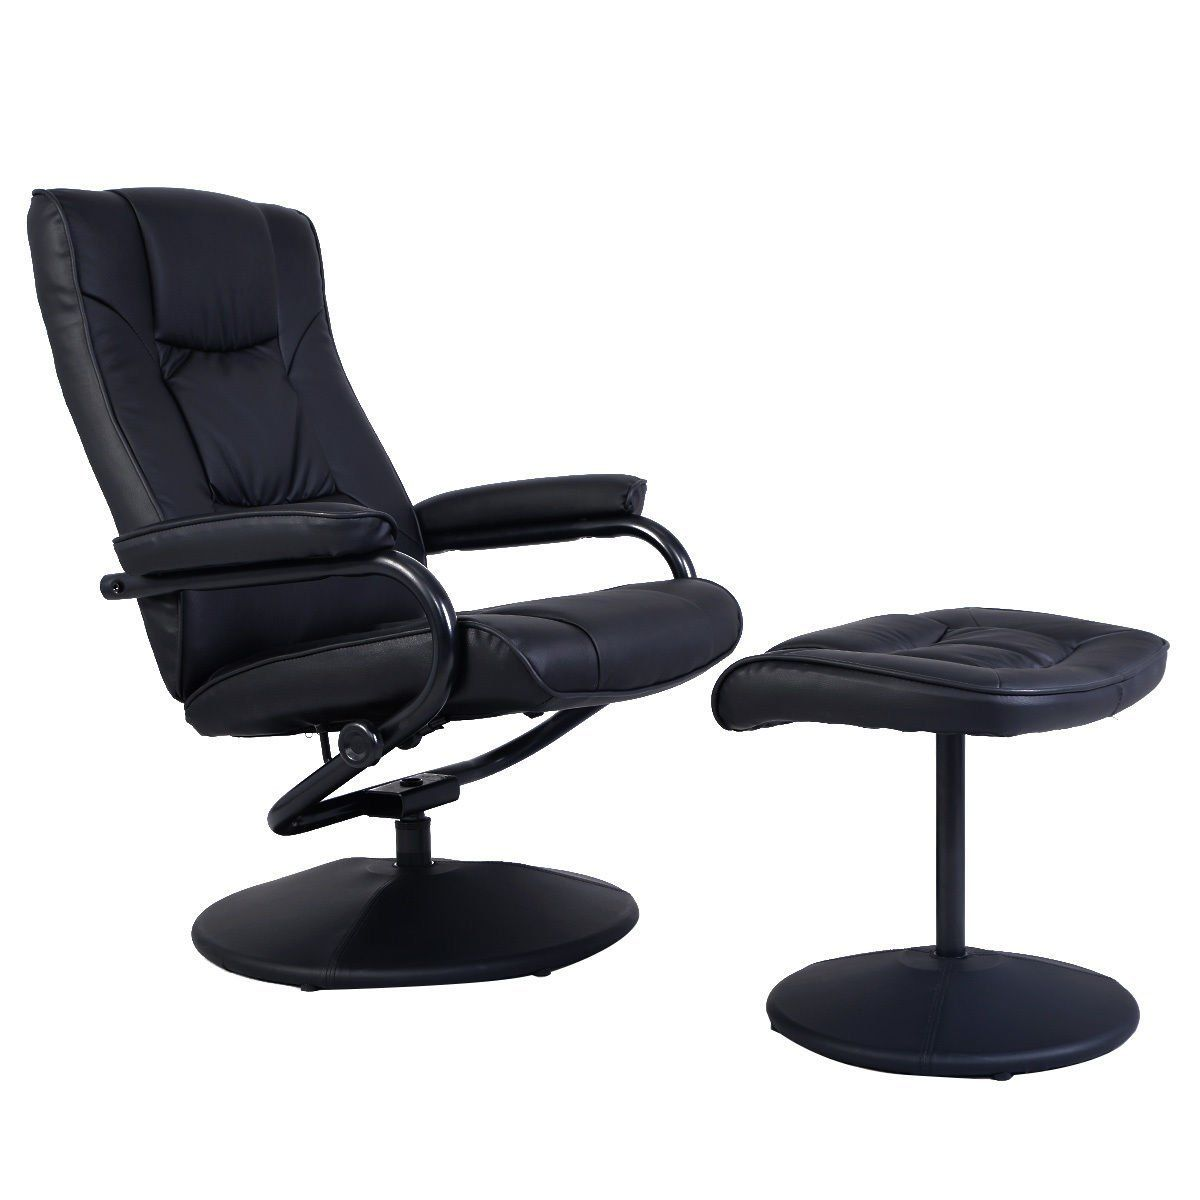 Giantex Recliner Chair Swivel